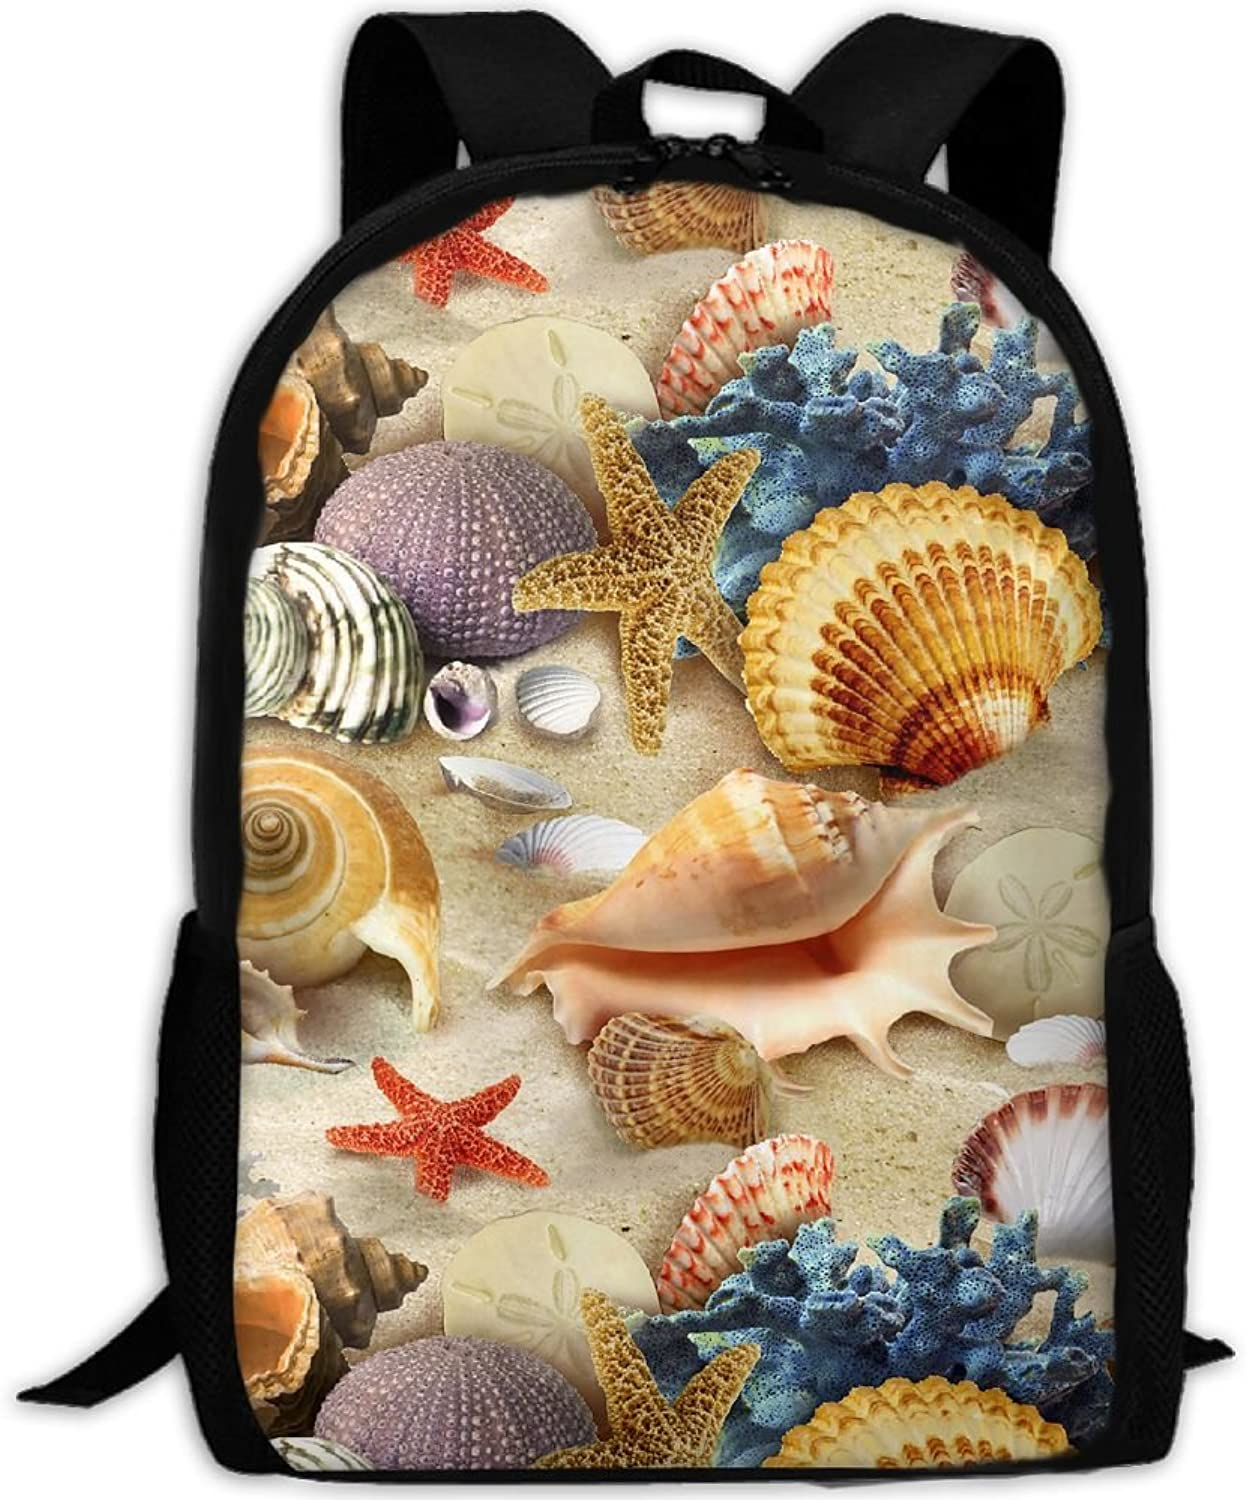 Adult Backpack Starfish Shells Conch and Seaweed College Daypack Oxford Bag Unisex Business Travel Sports Bag with Adjustable Strap